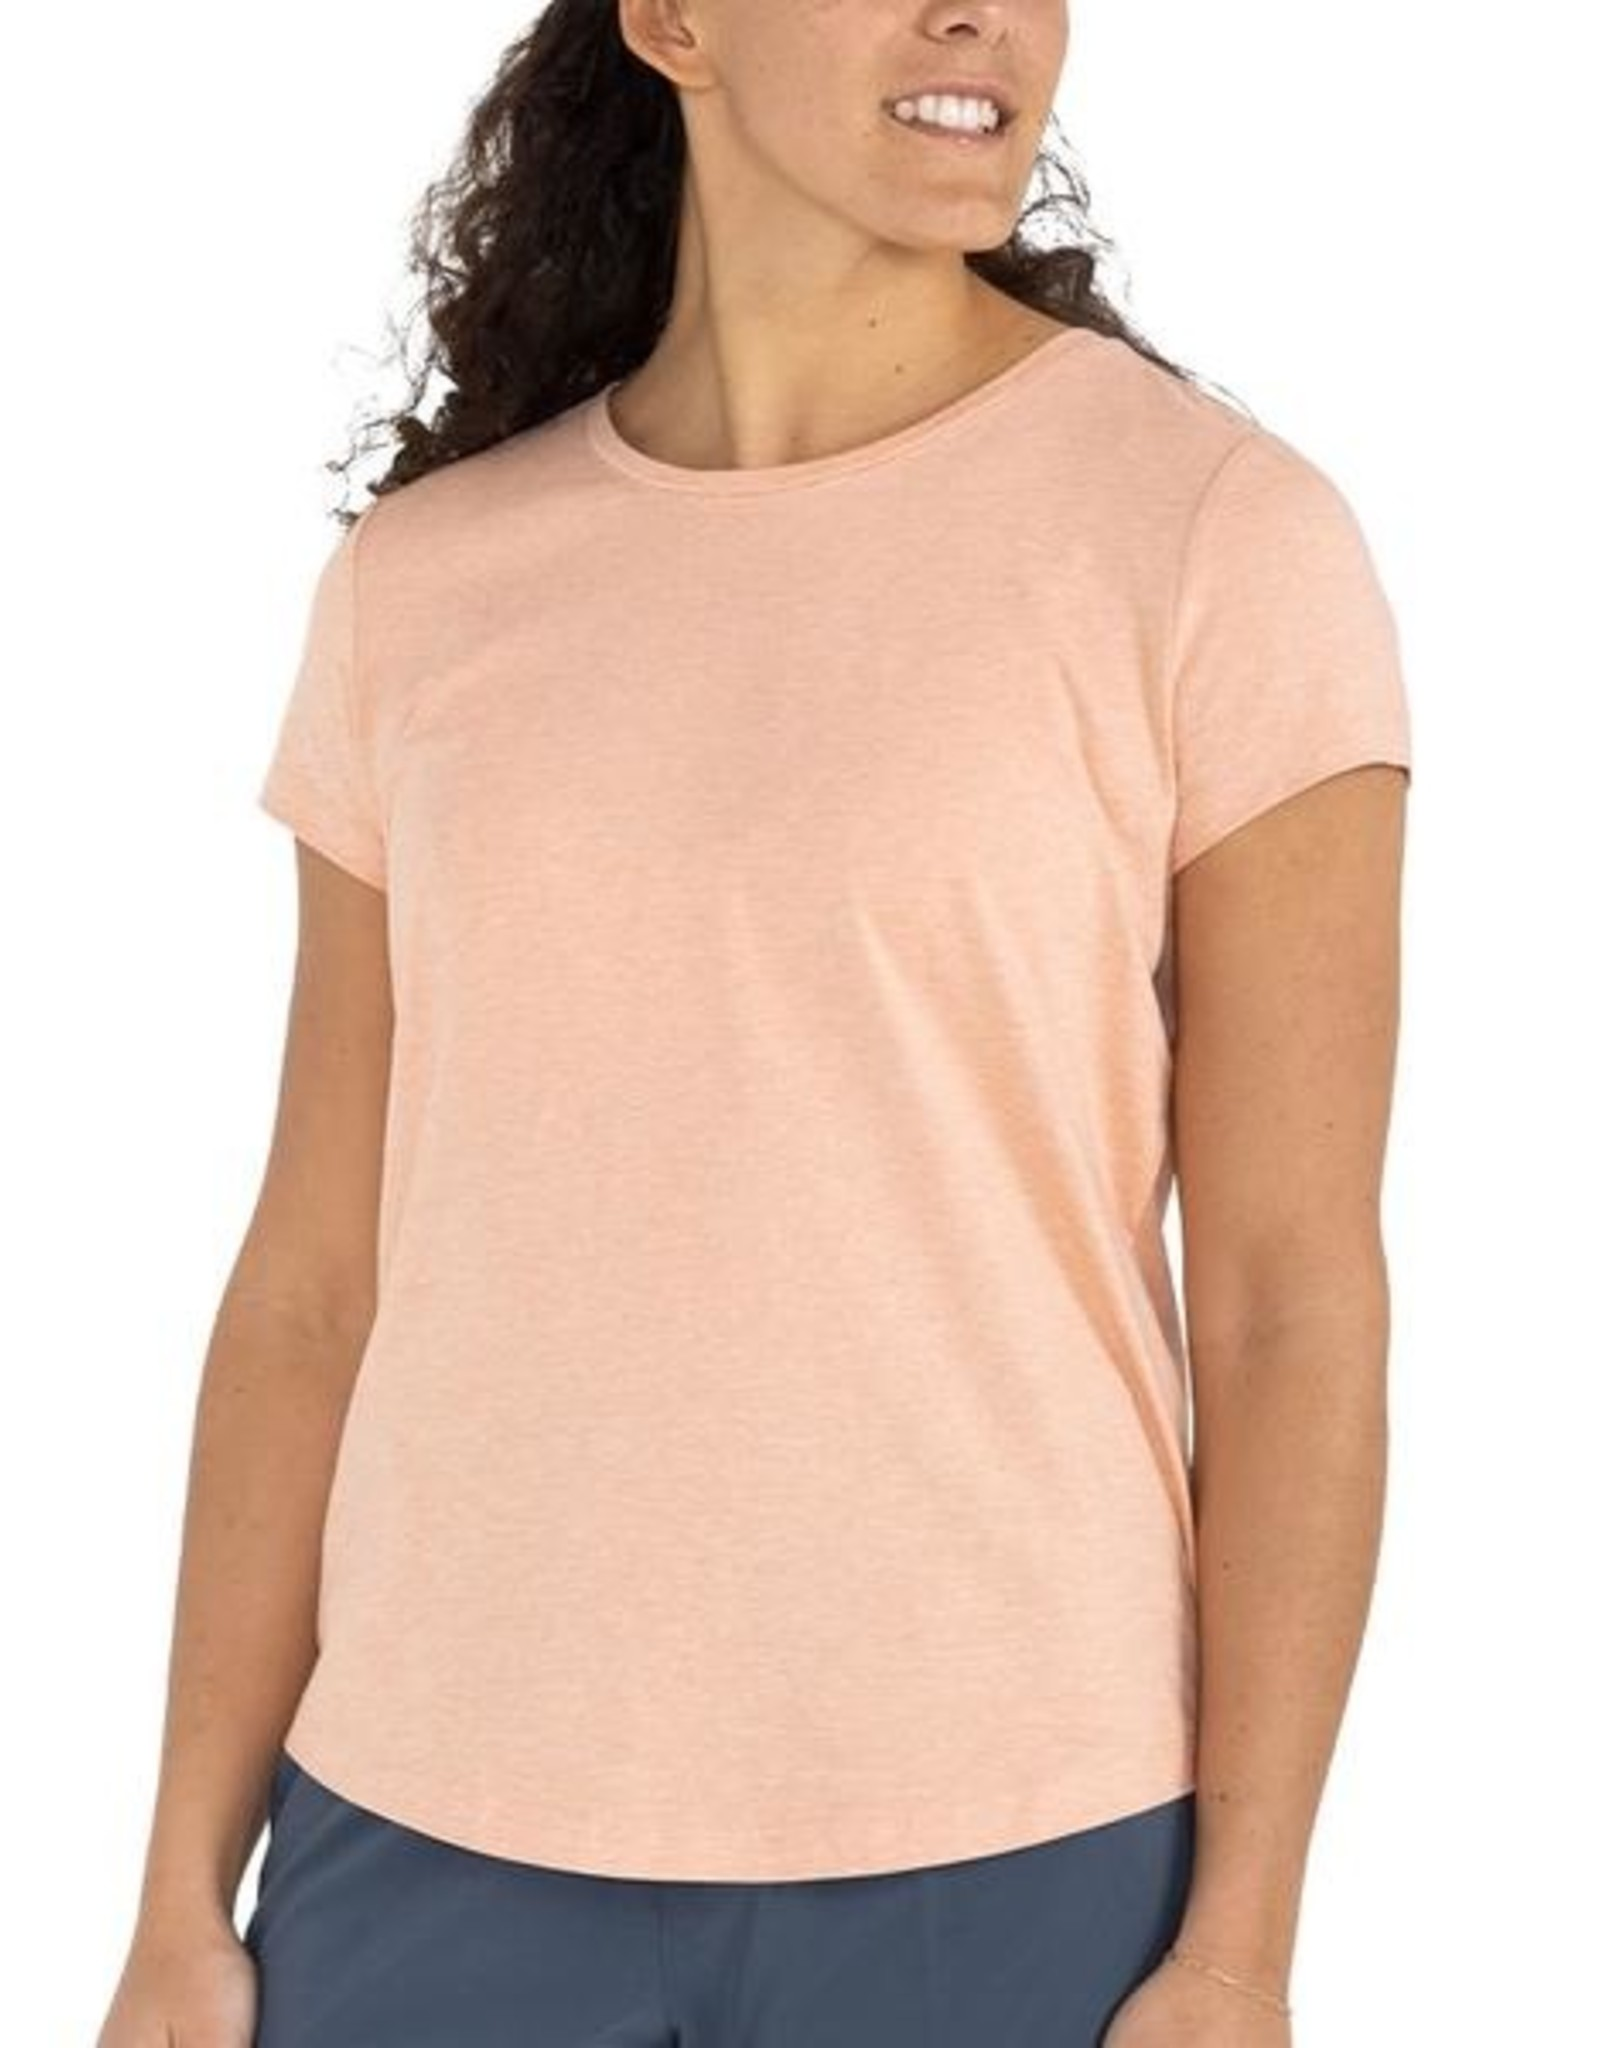 Free Fly Bamboo Current Tee